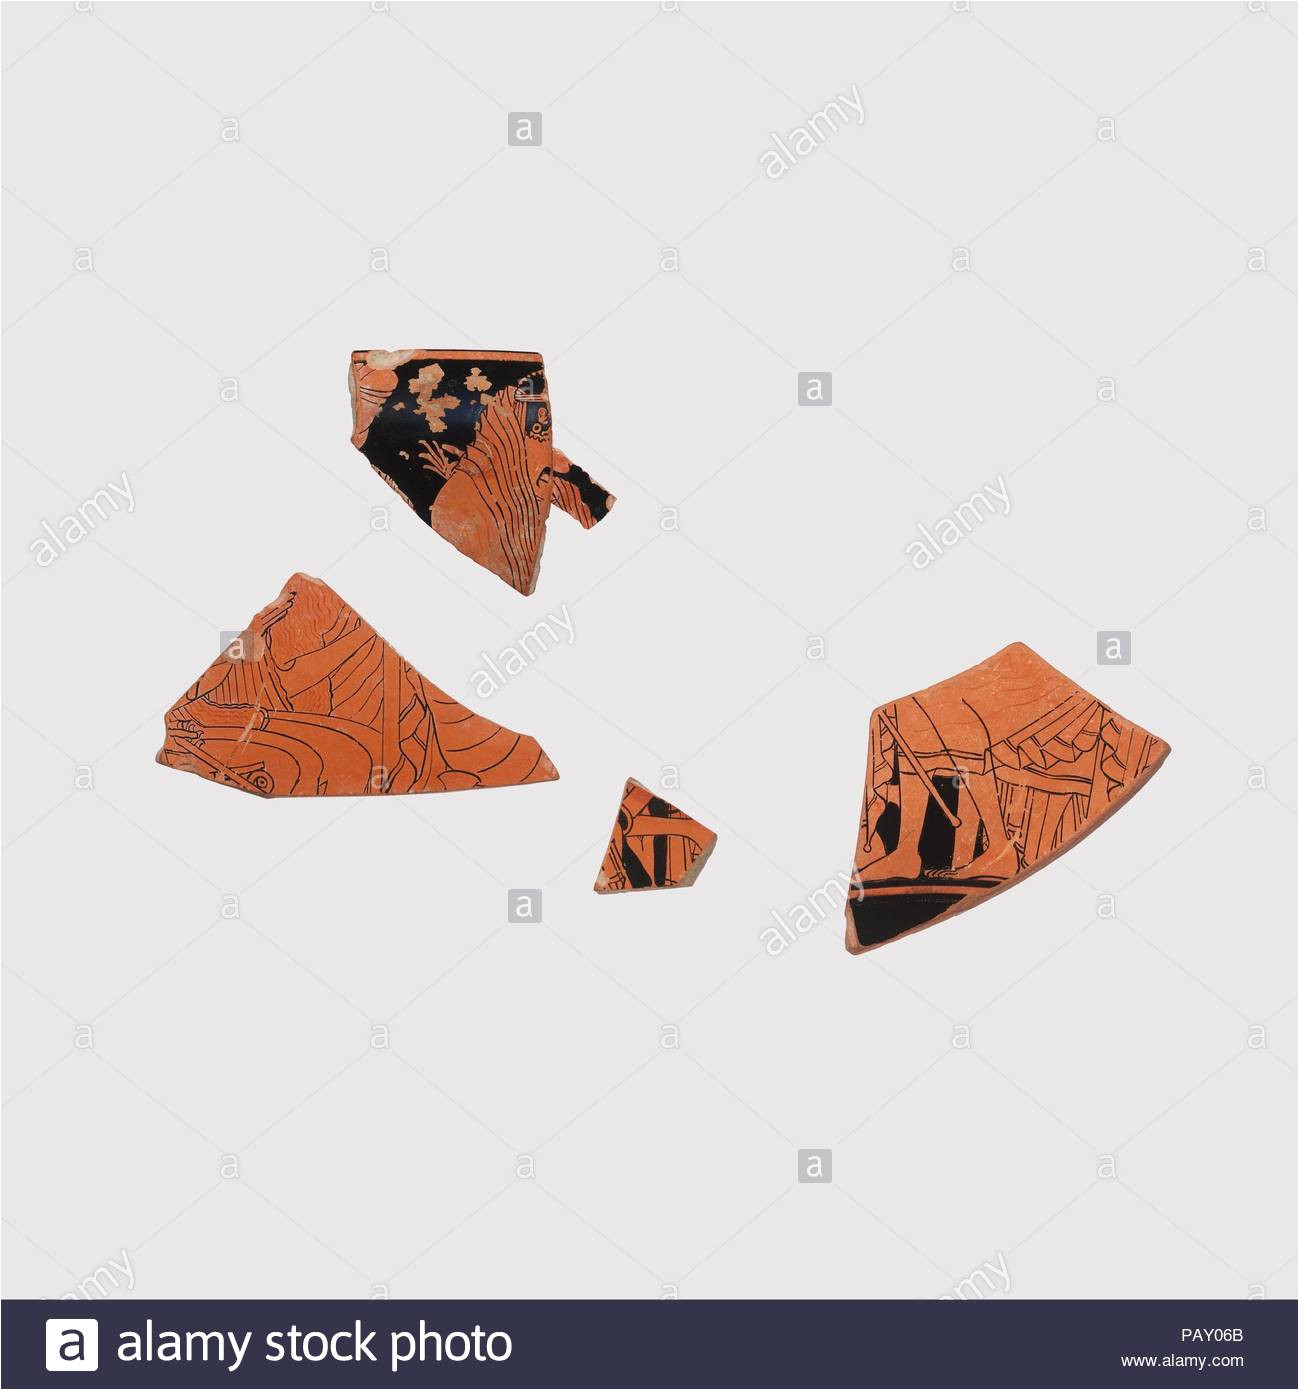 fragments of a terracotta kylix drinking cup culture greek attic